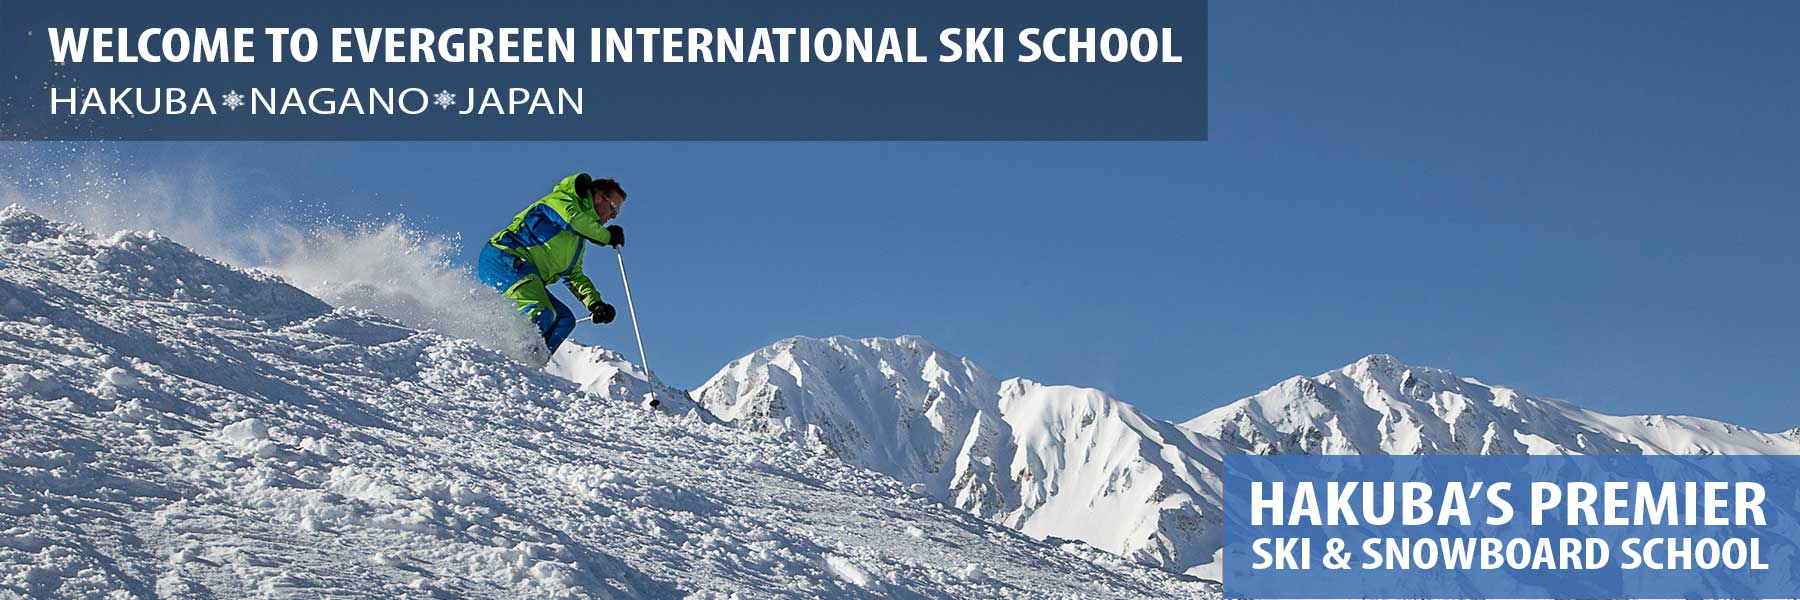 japan ski school header - mountains and blue sky